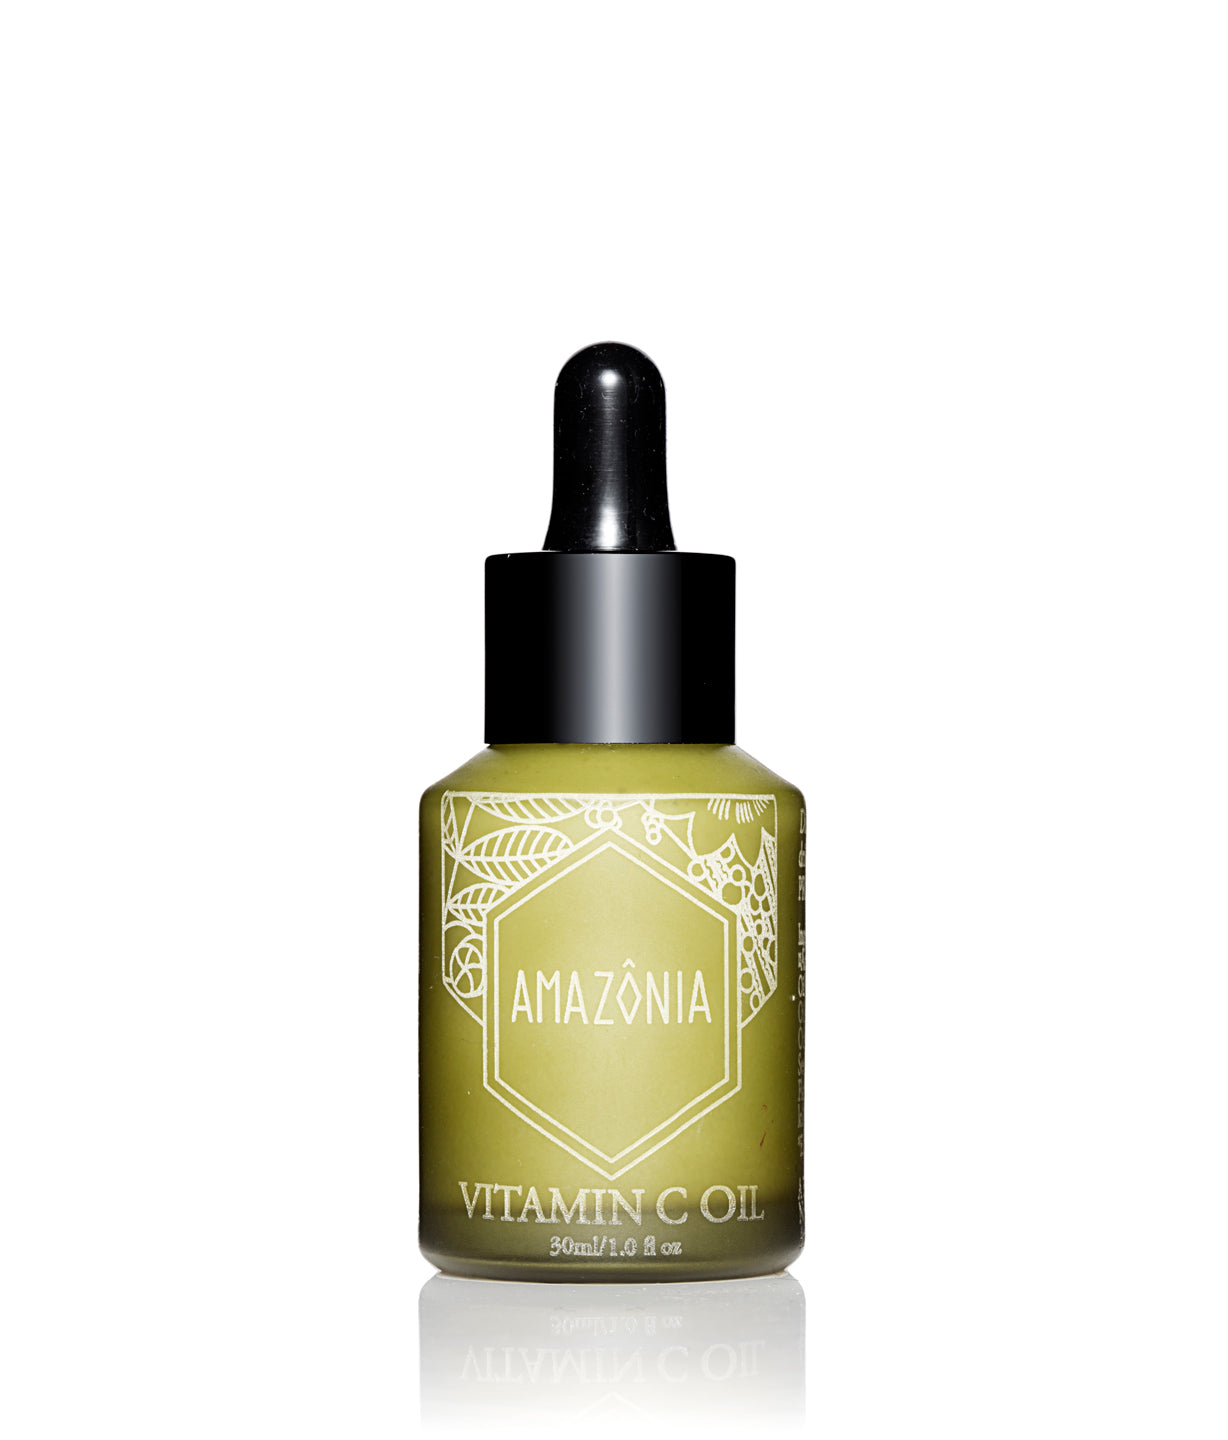 Vitamin C Oil Serum